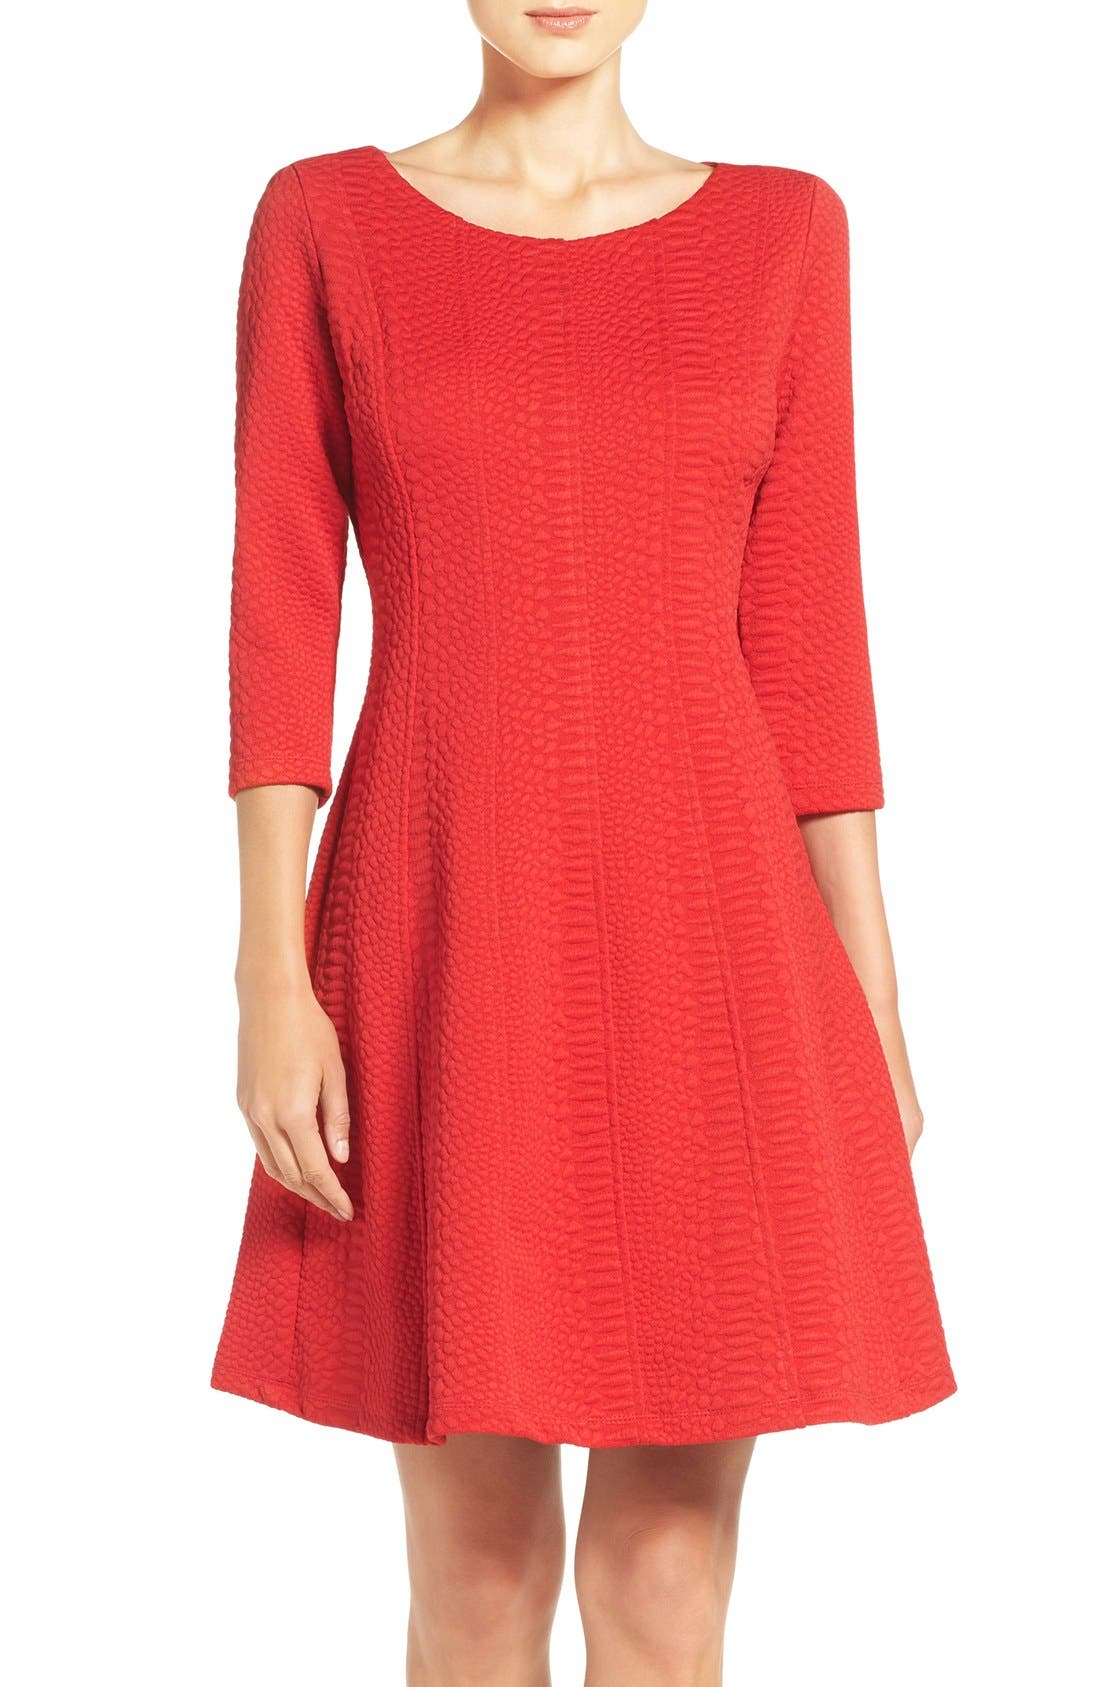 Alternate Image 1 Selected - Taylor Dresses Jacquard Knit Fit & Flare Dress